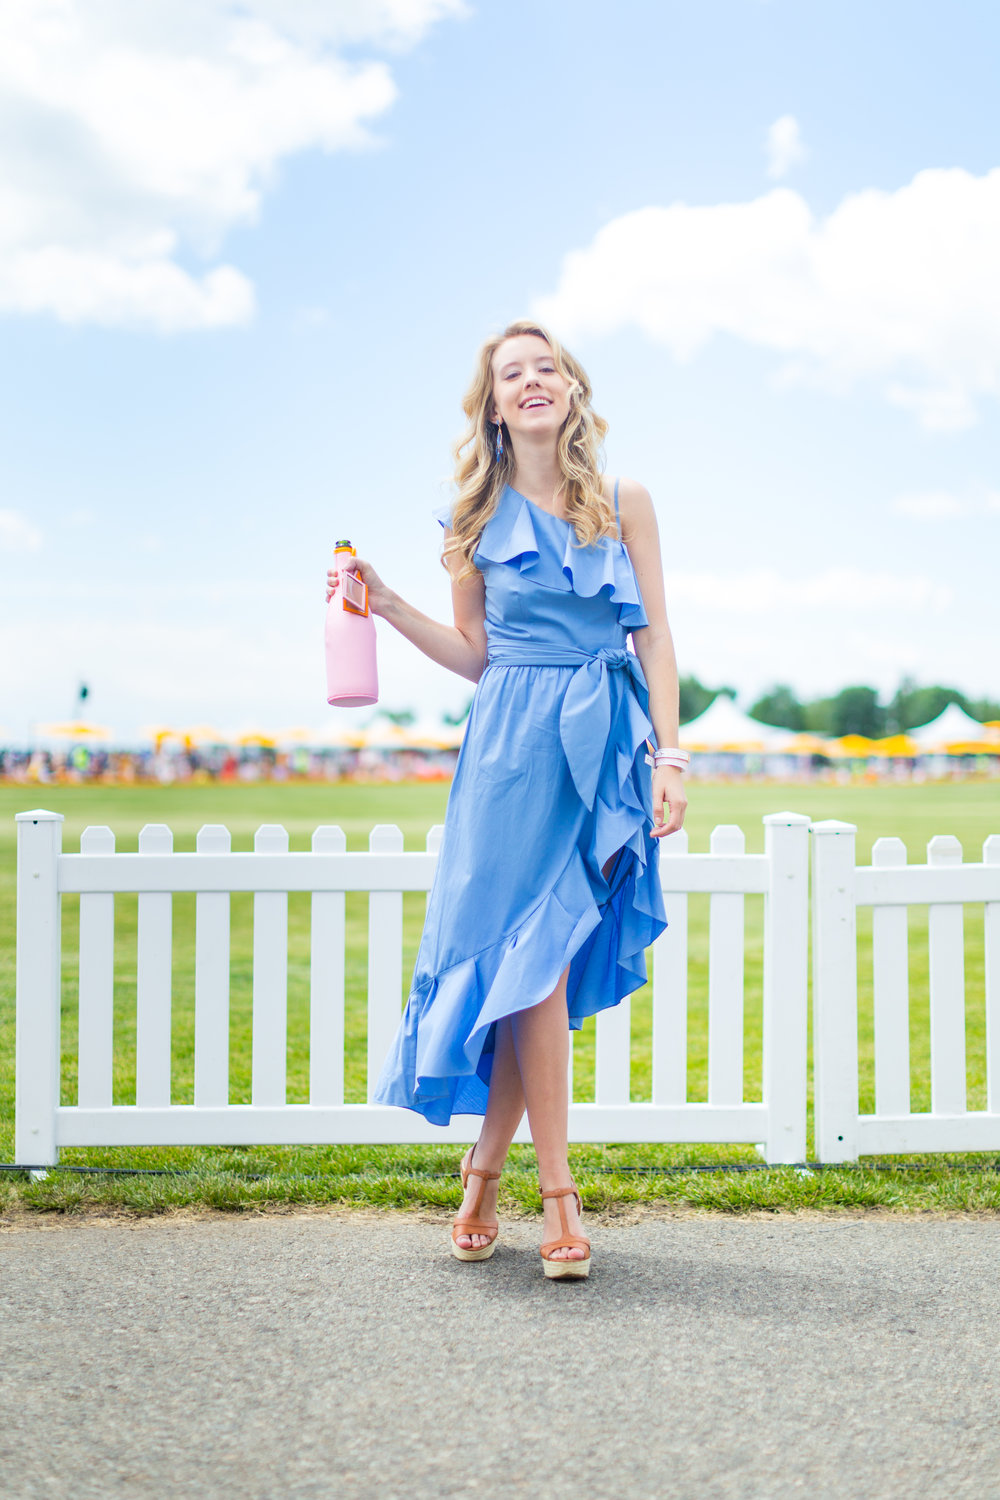 Veuve Clicquot Polo Classic NYC Summer Style Ruffled One Shoulder Blue Dress-24.jpg